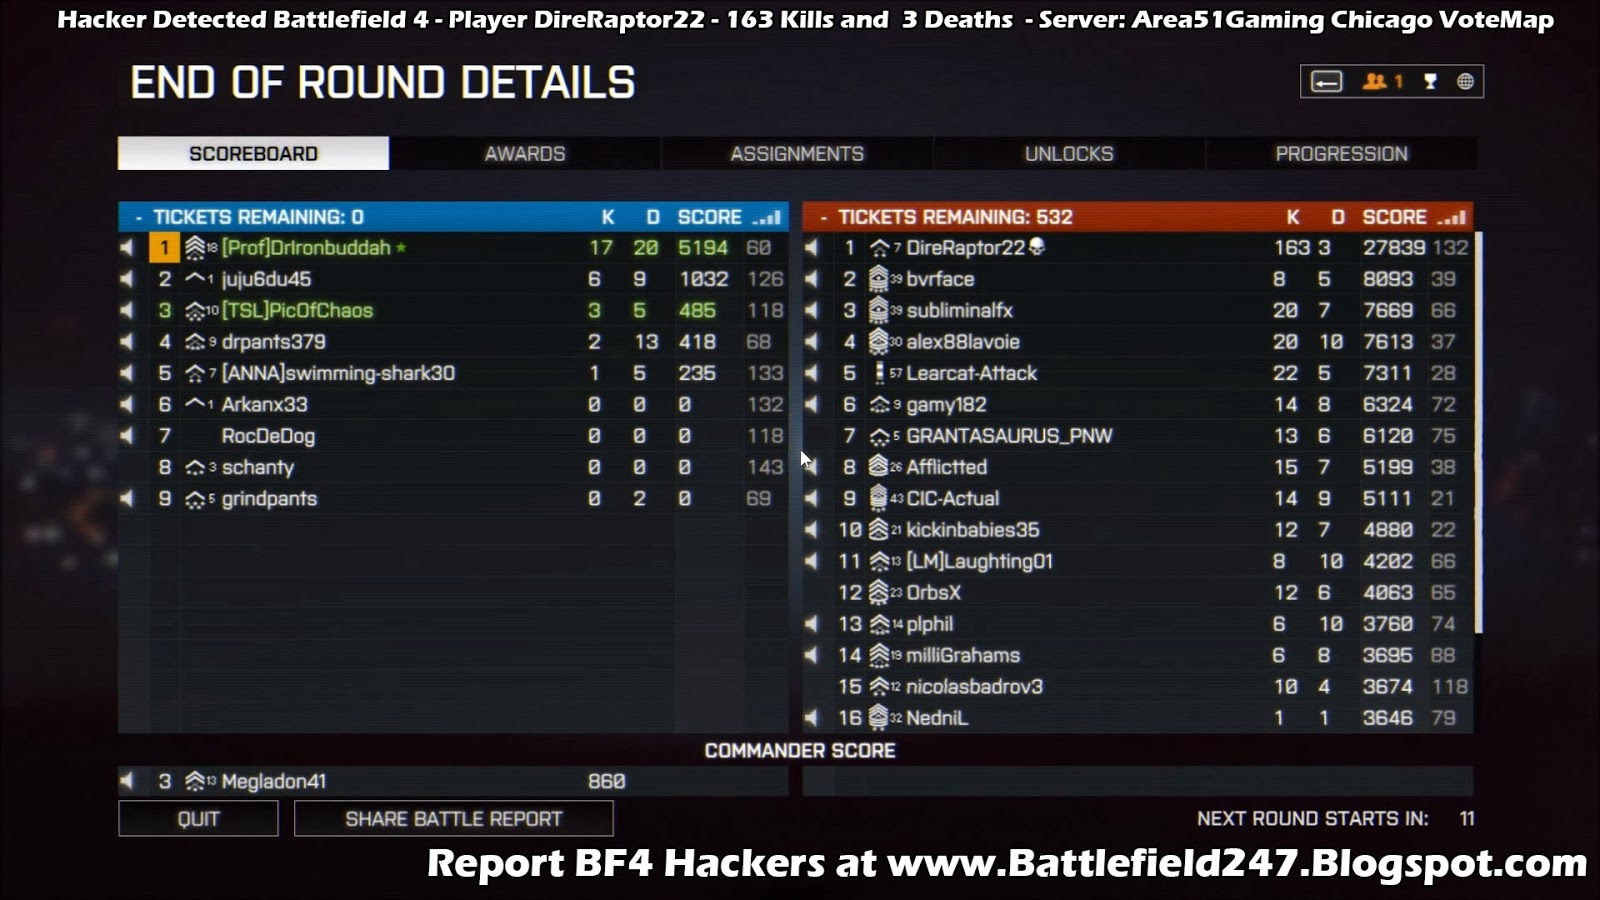 Busted DireRaptor22 BF4 Hacker Cheater 163 to 3 K/D